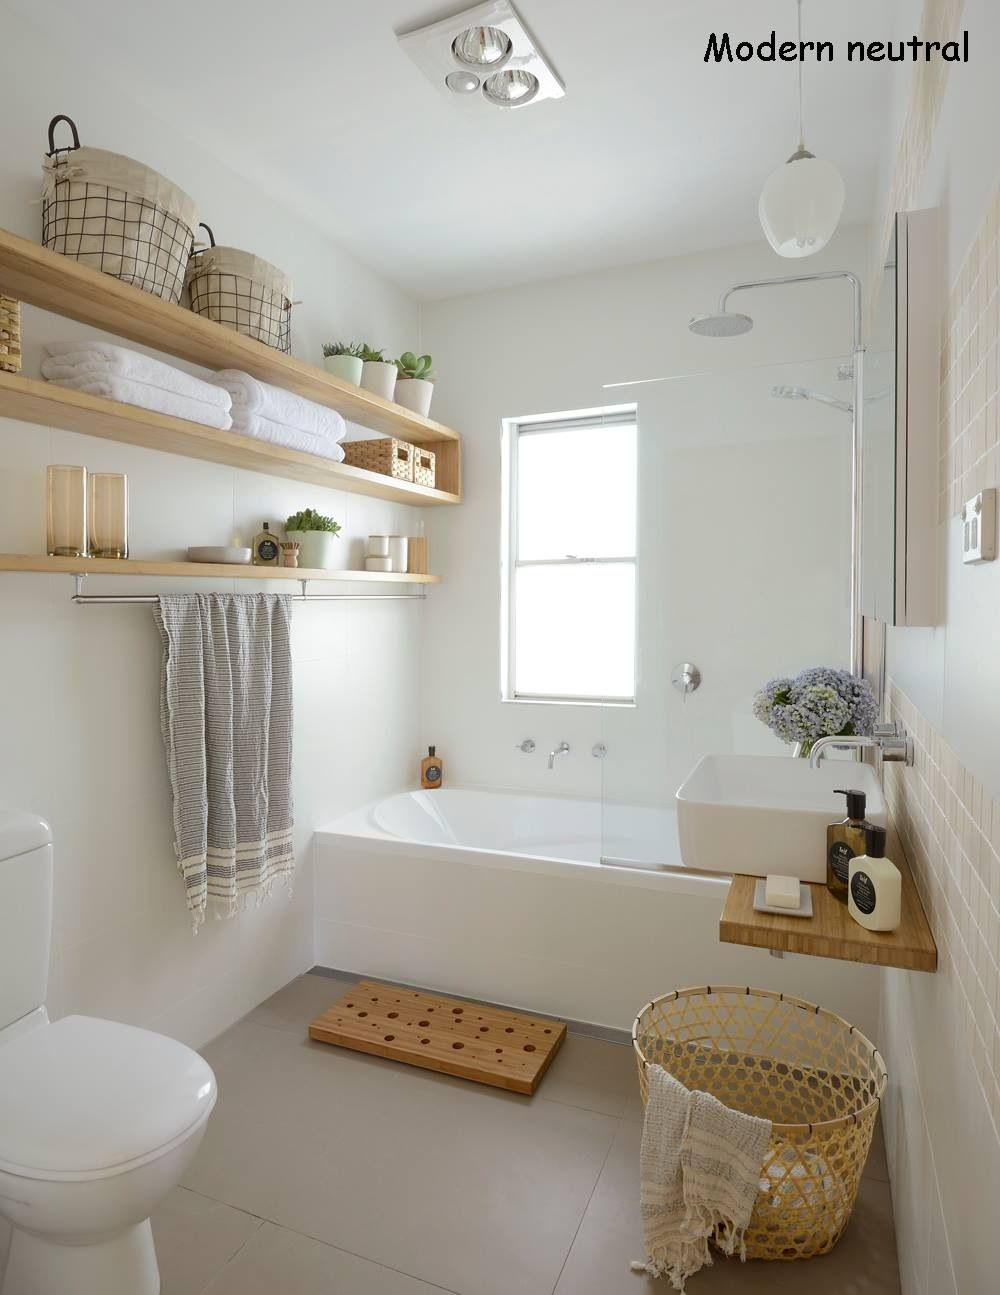 Pin by Tracey Hartman on homie | Pinterest | Toilet room, Toilet and ...